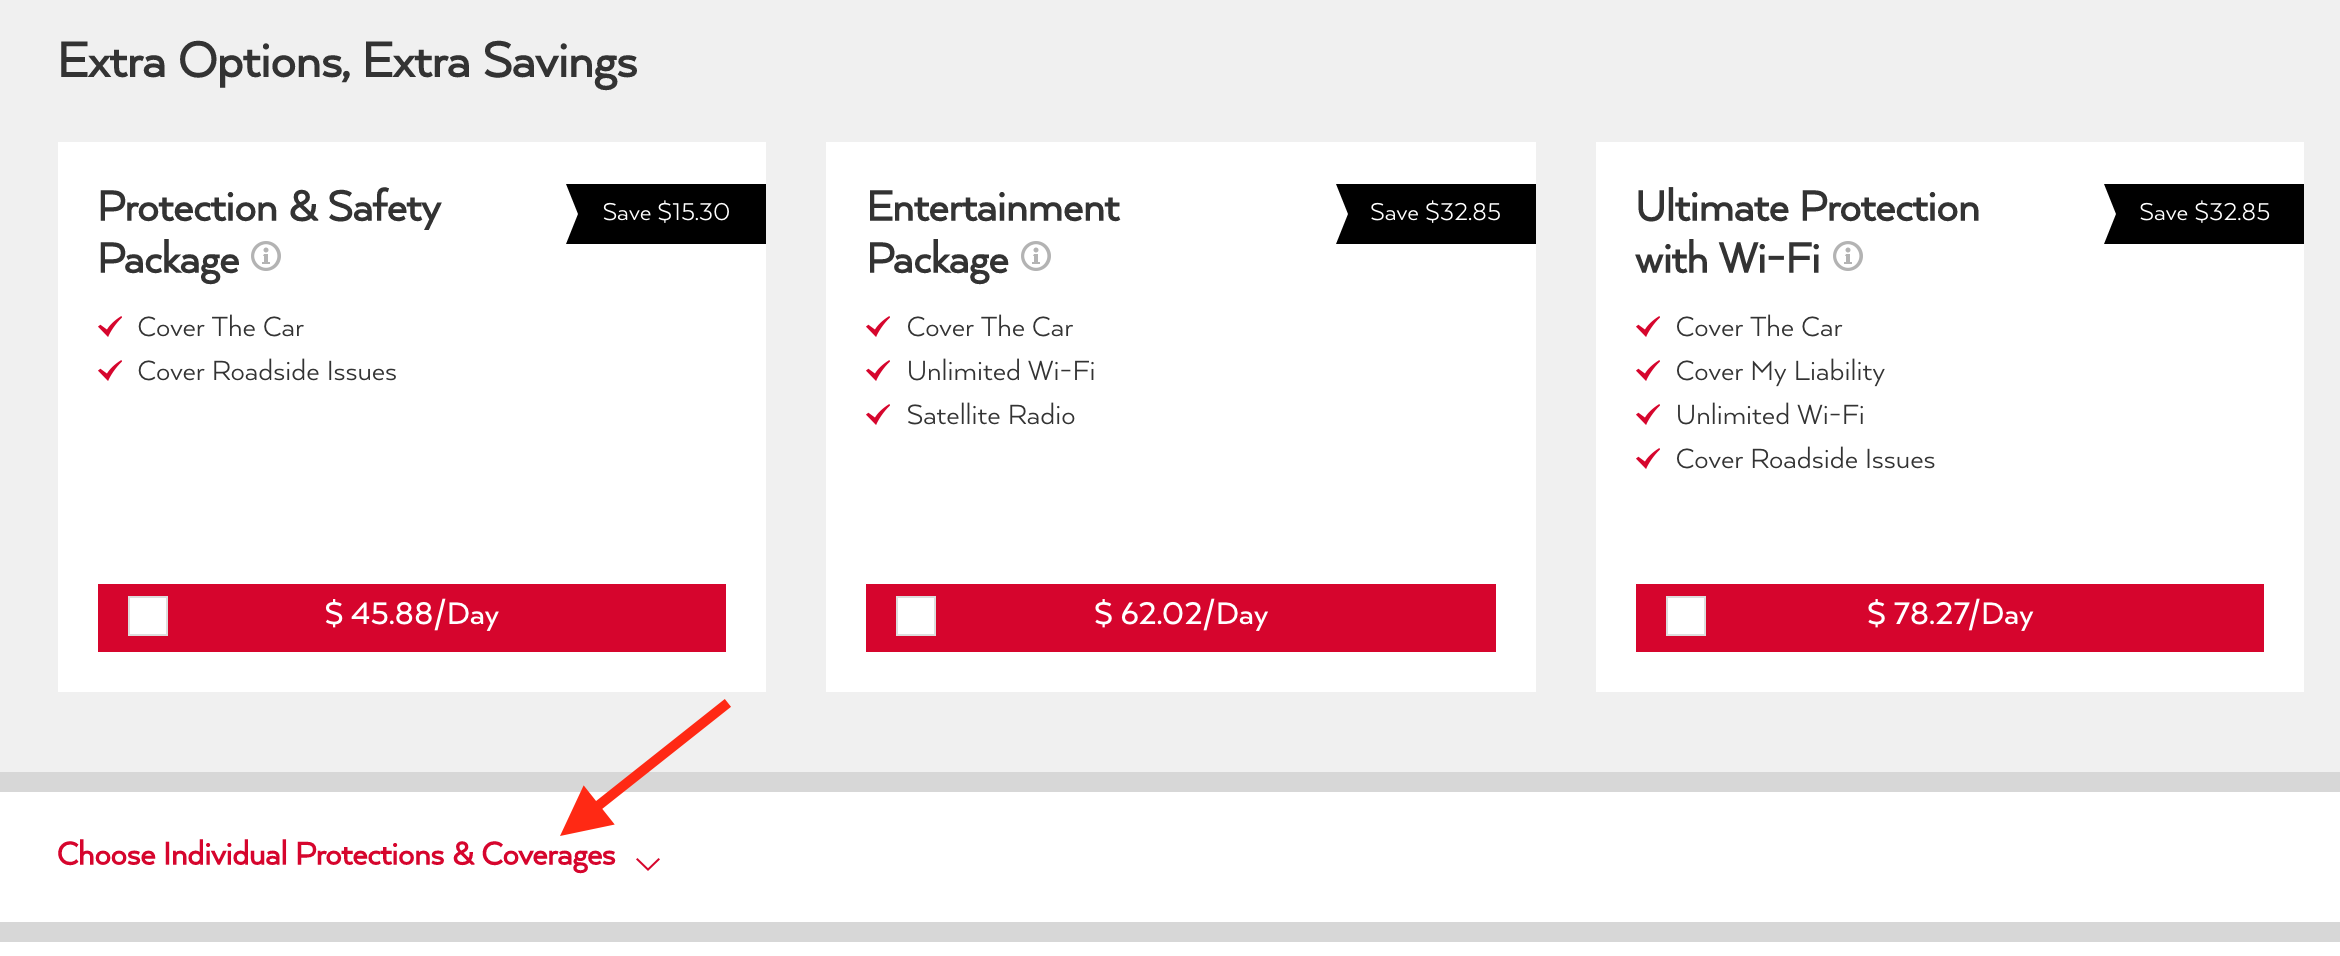 AVIS ADDING ADDITIONAL WINDOWS 8.1 DRIVER DOWNLOAD